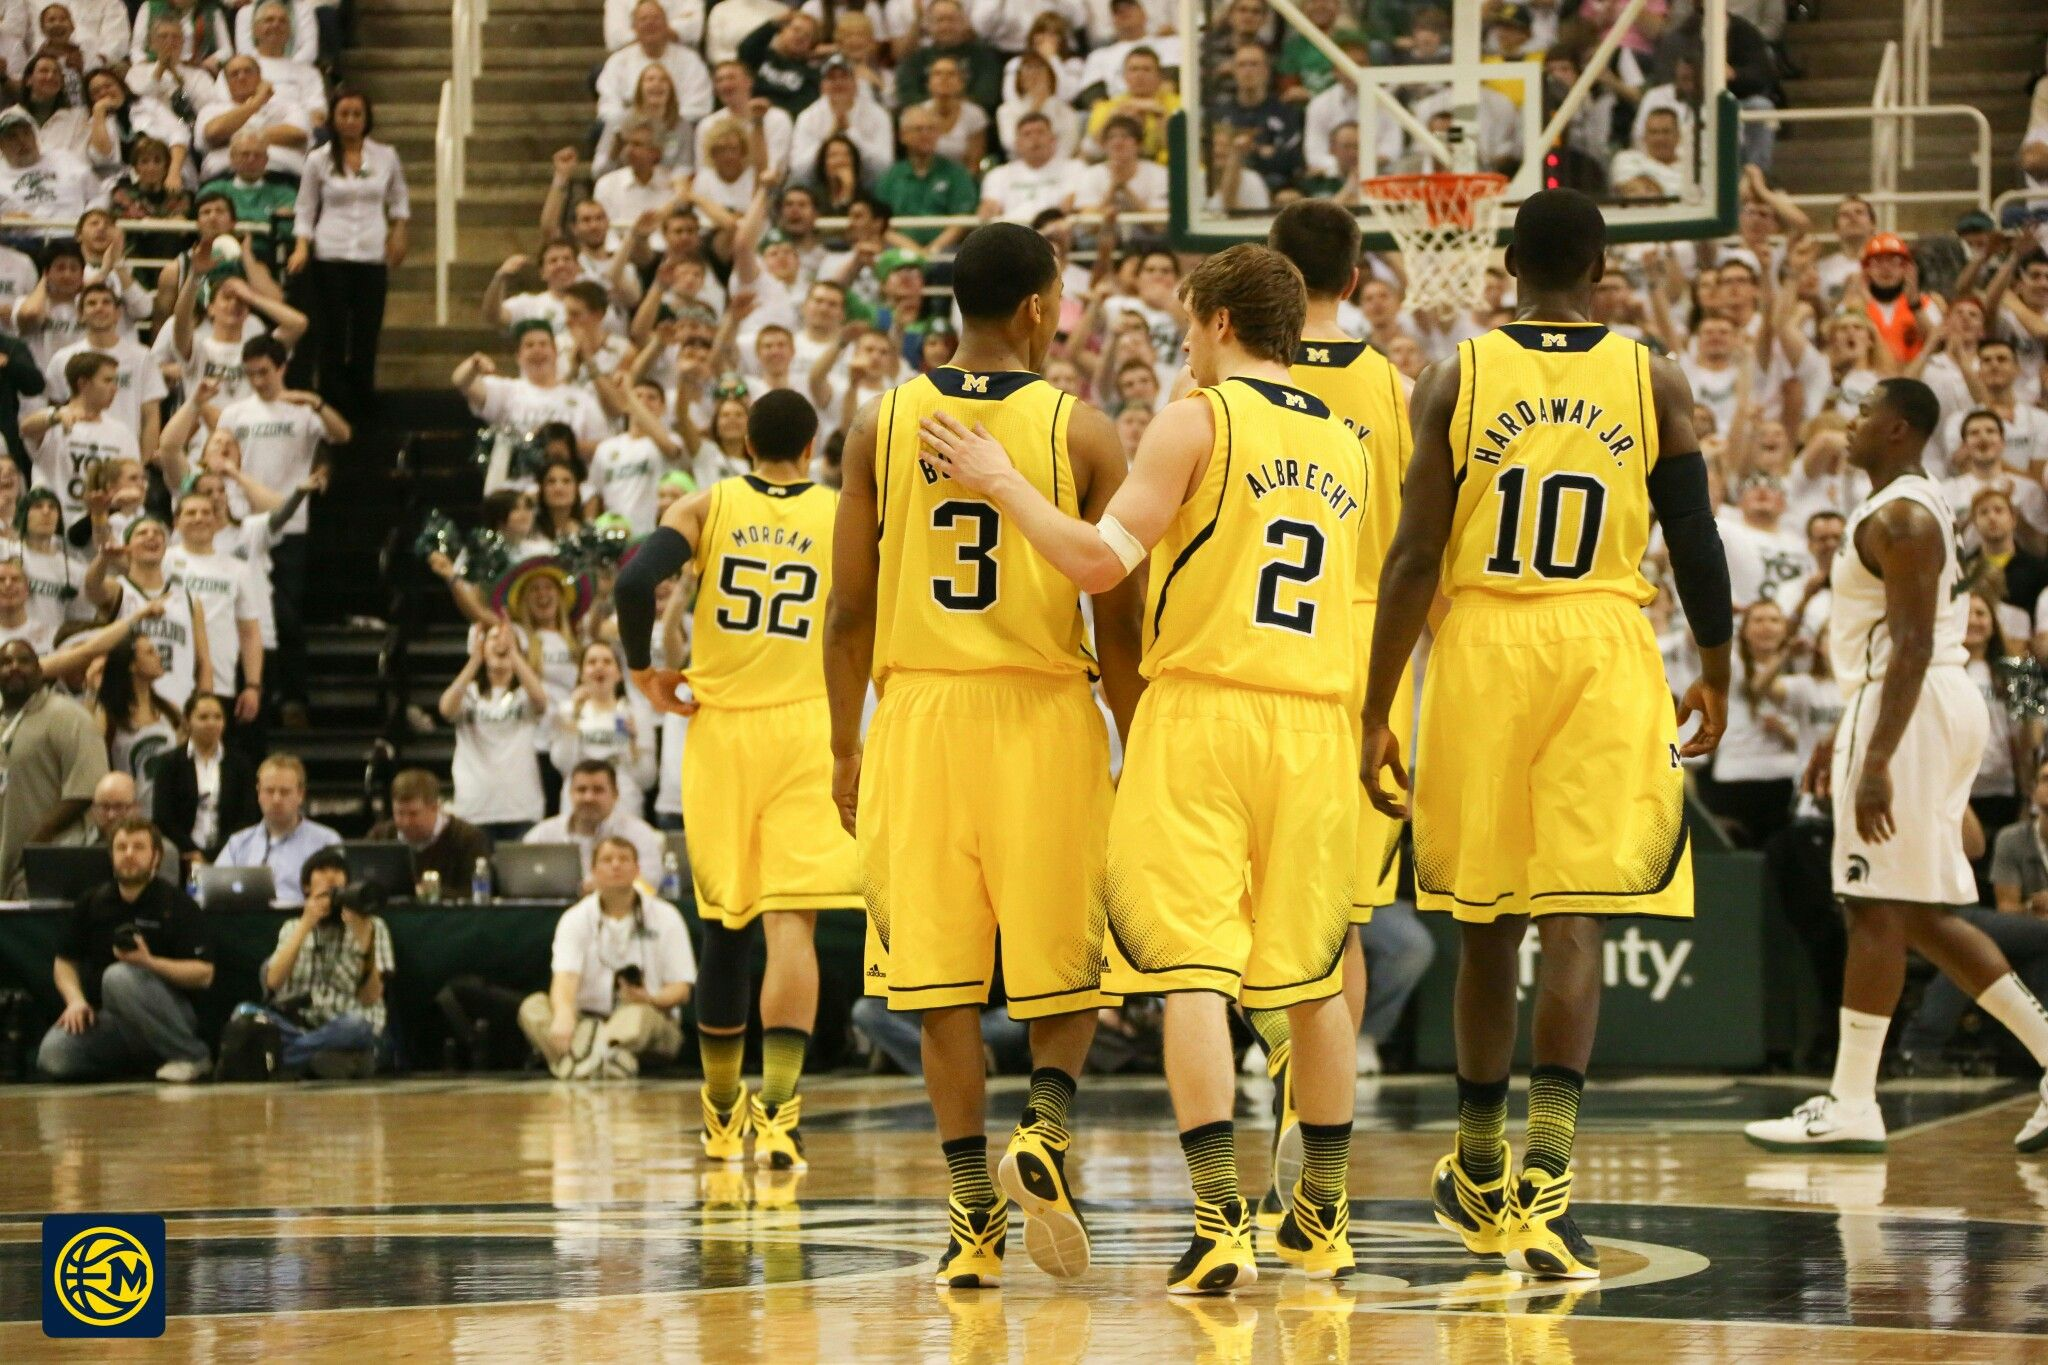 Pin by Eric on Michigan Basketball (With images